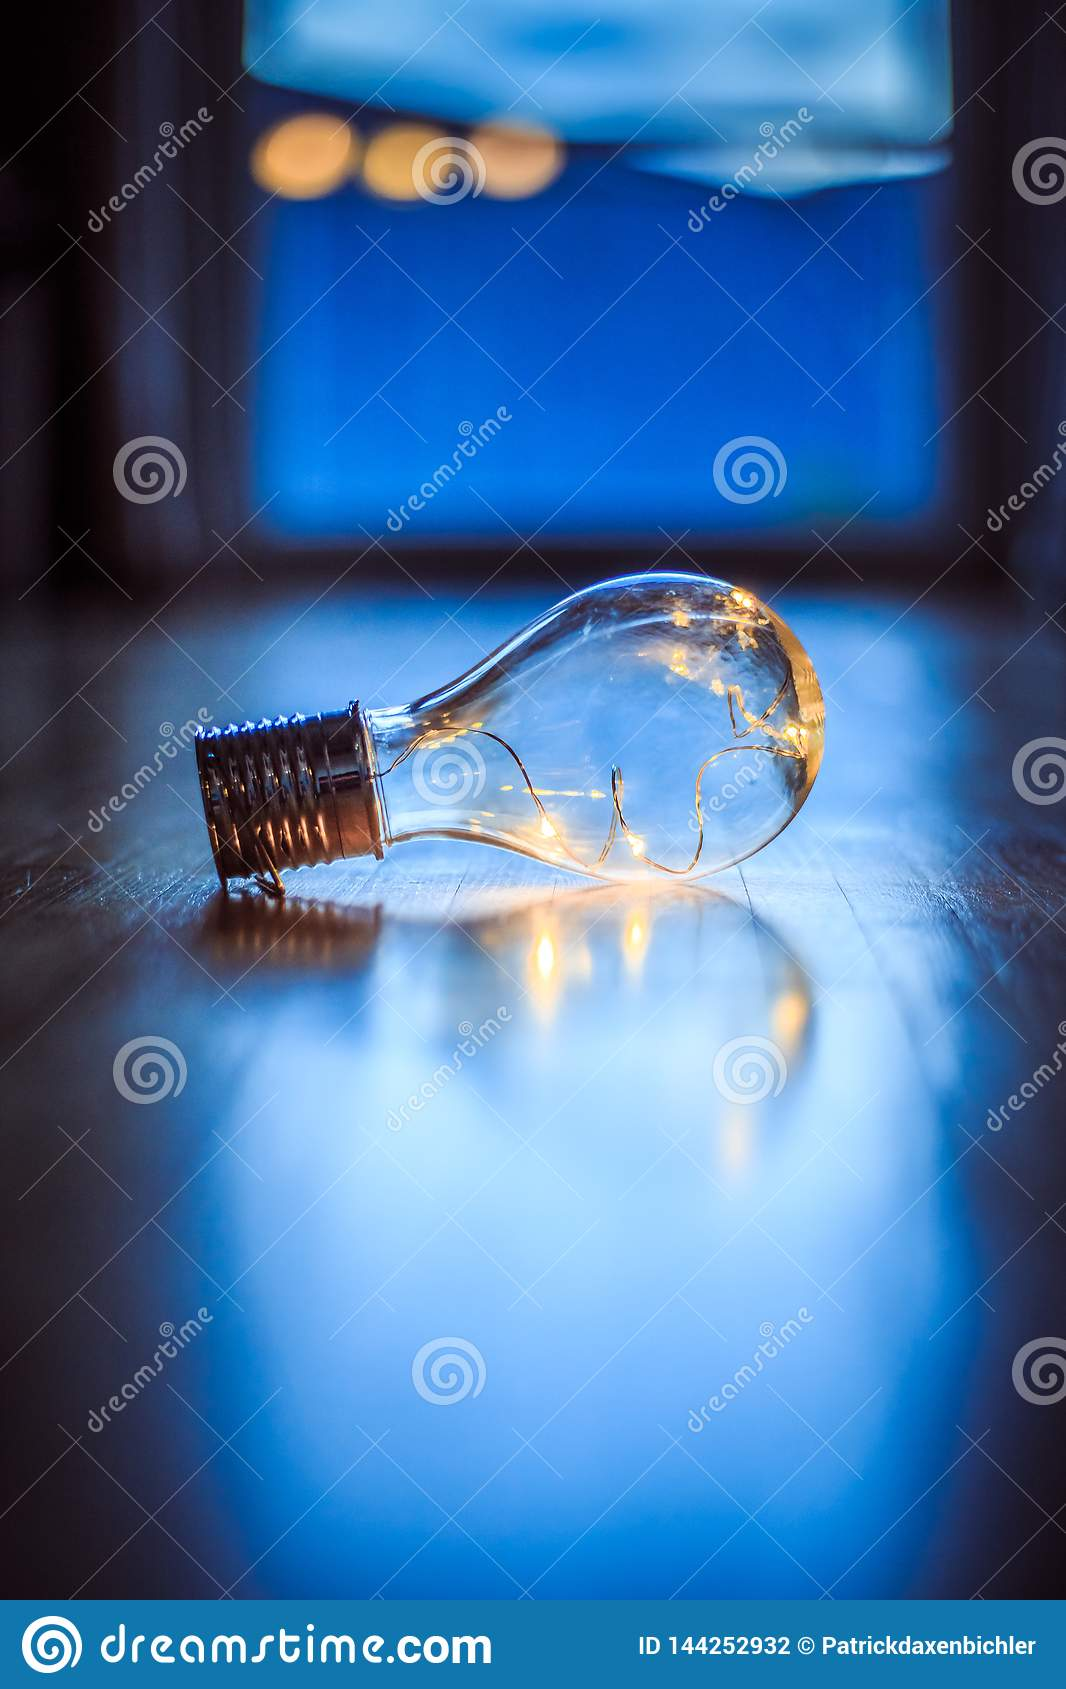 Ideas and innovation: Light bulb with LEDs is lying on the wooden floor. Window and light in the blurry background